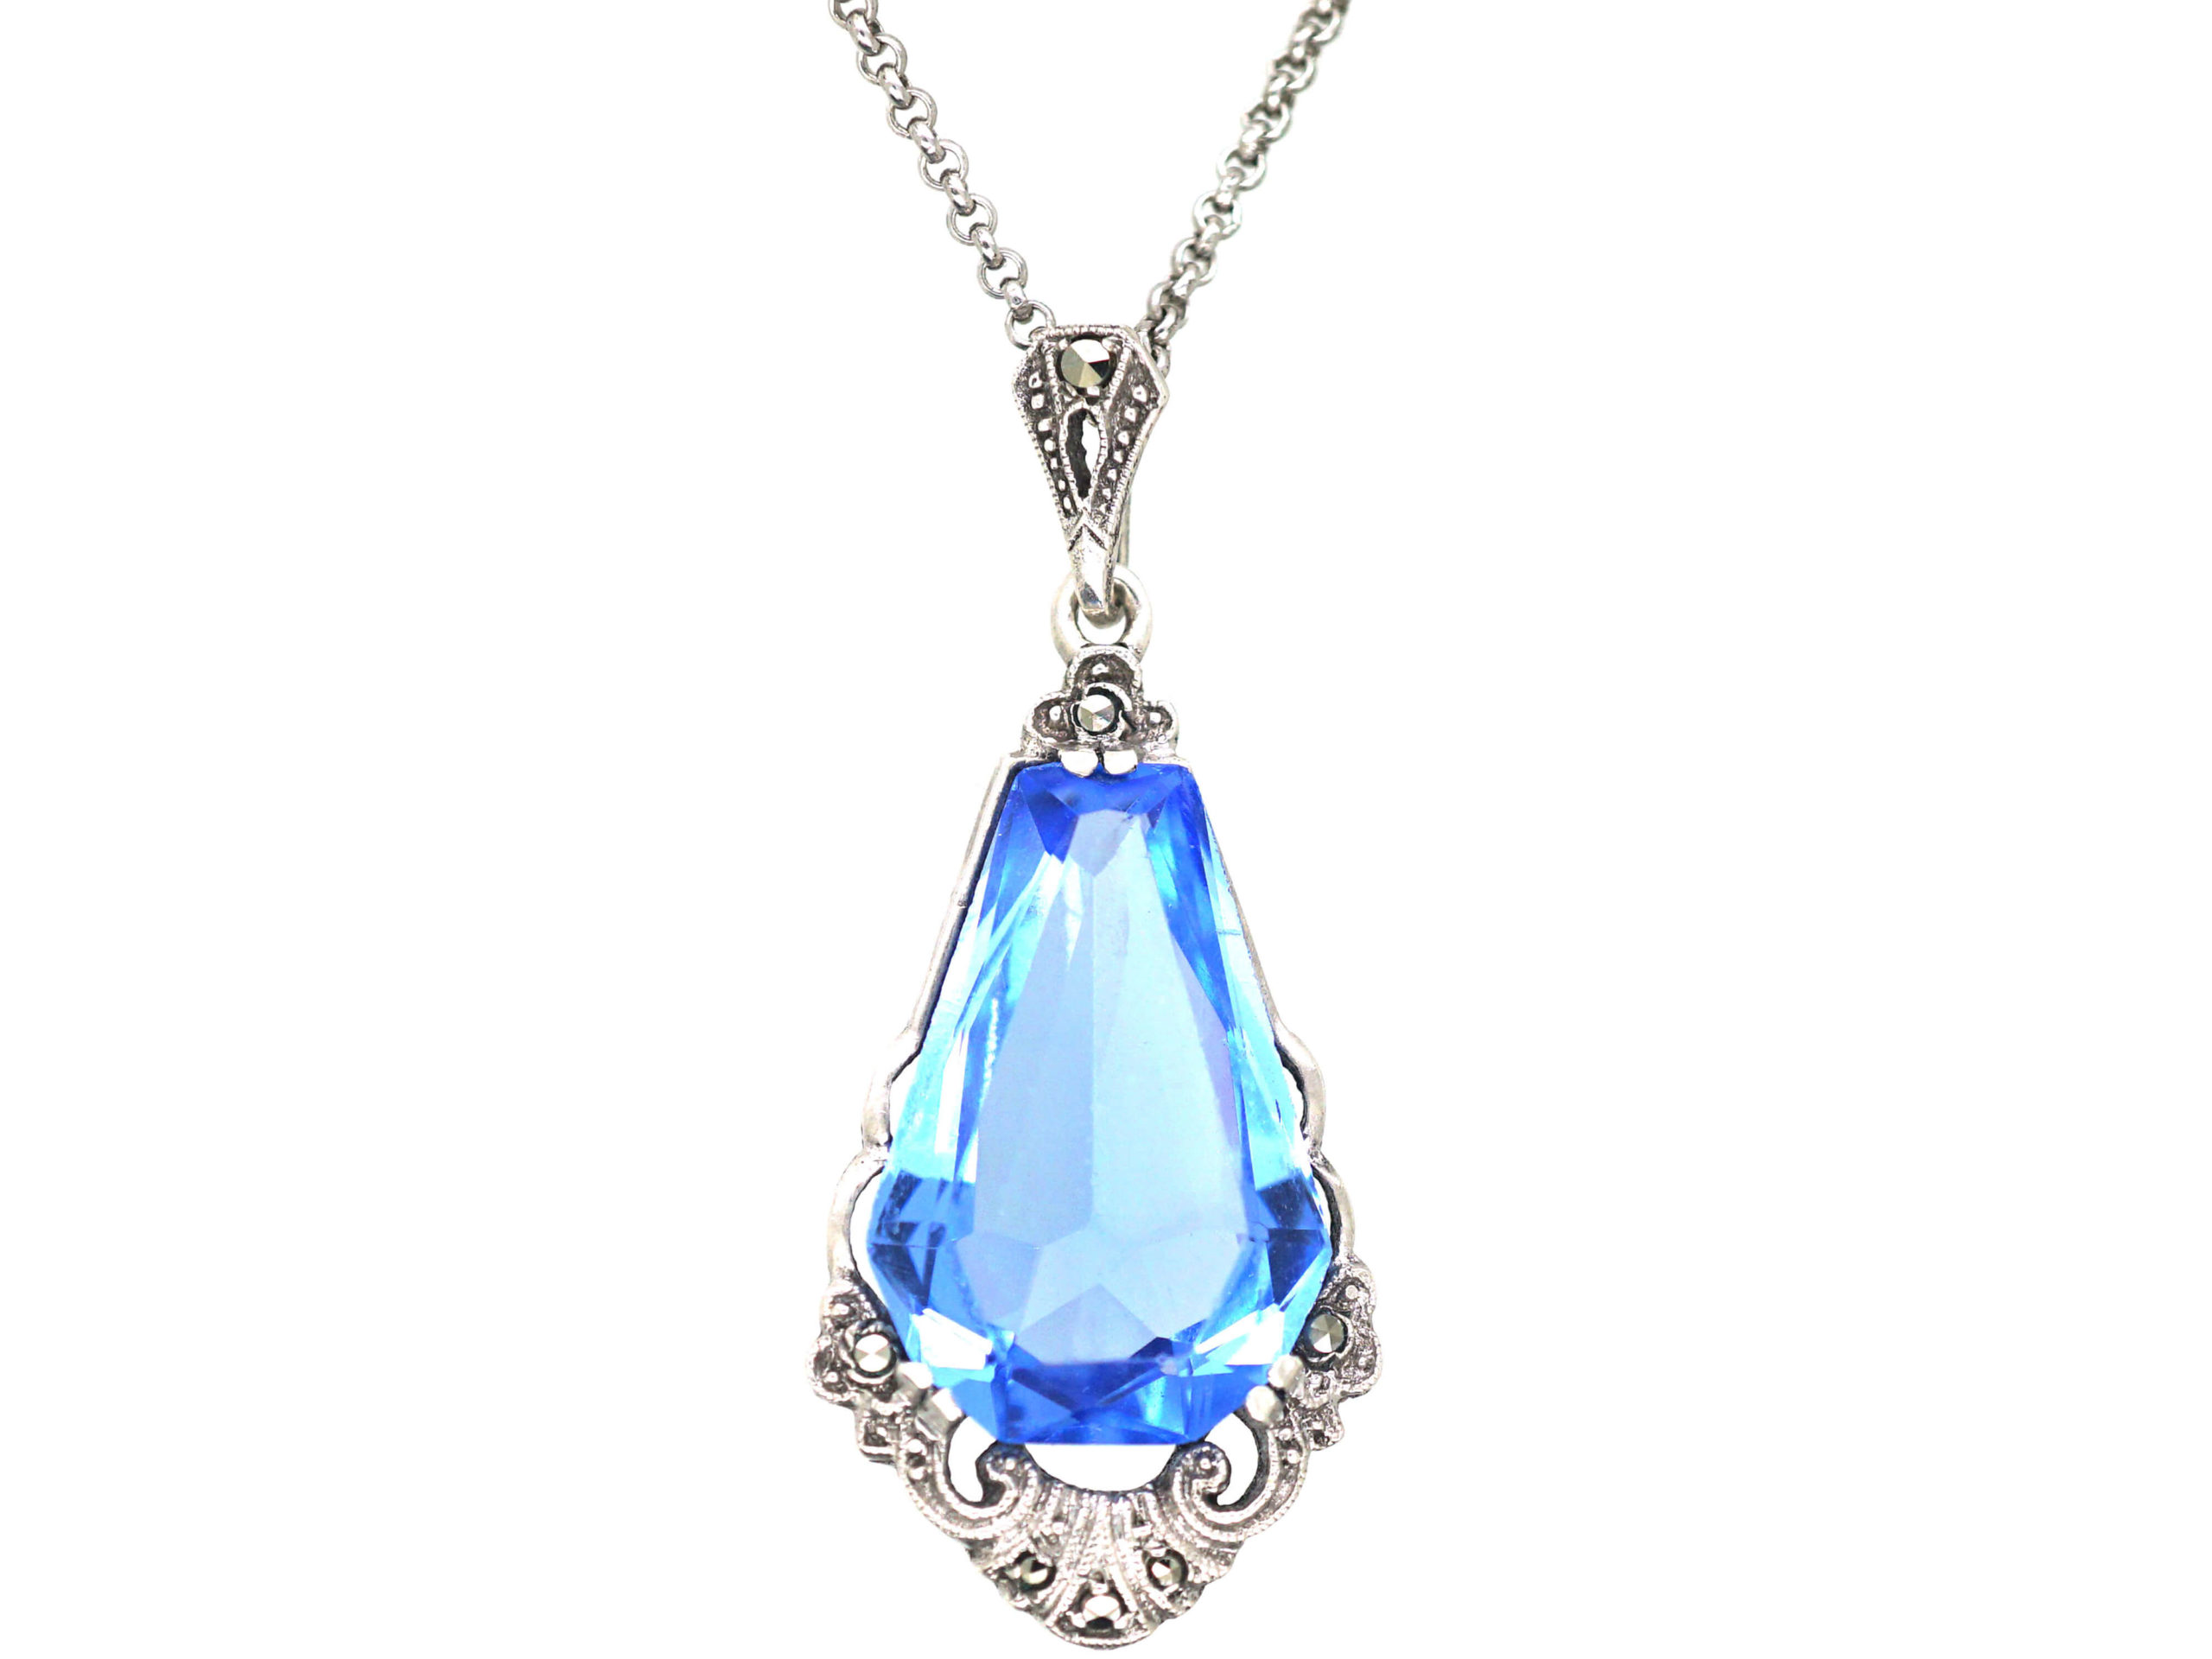 Art Deco Silver & Synthetic Blue Spinel Drop Pendant on a Silver Chain